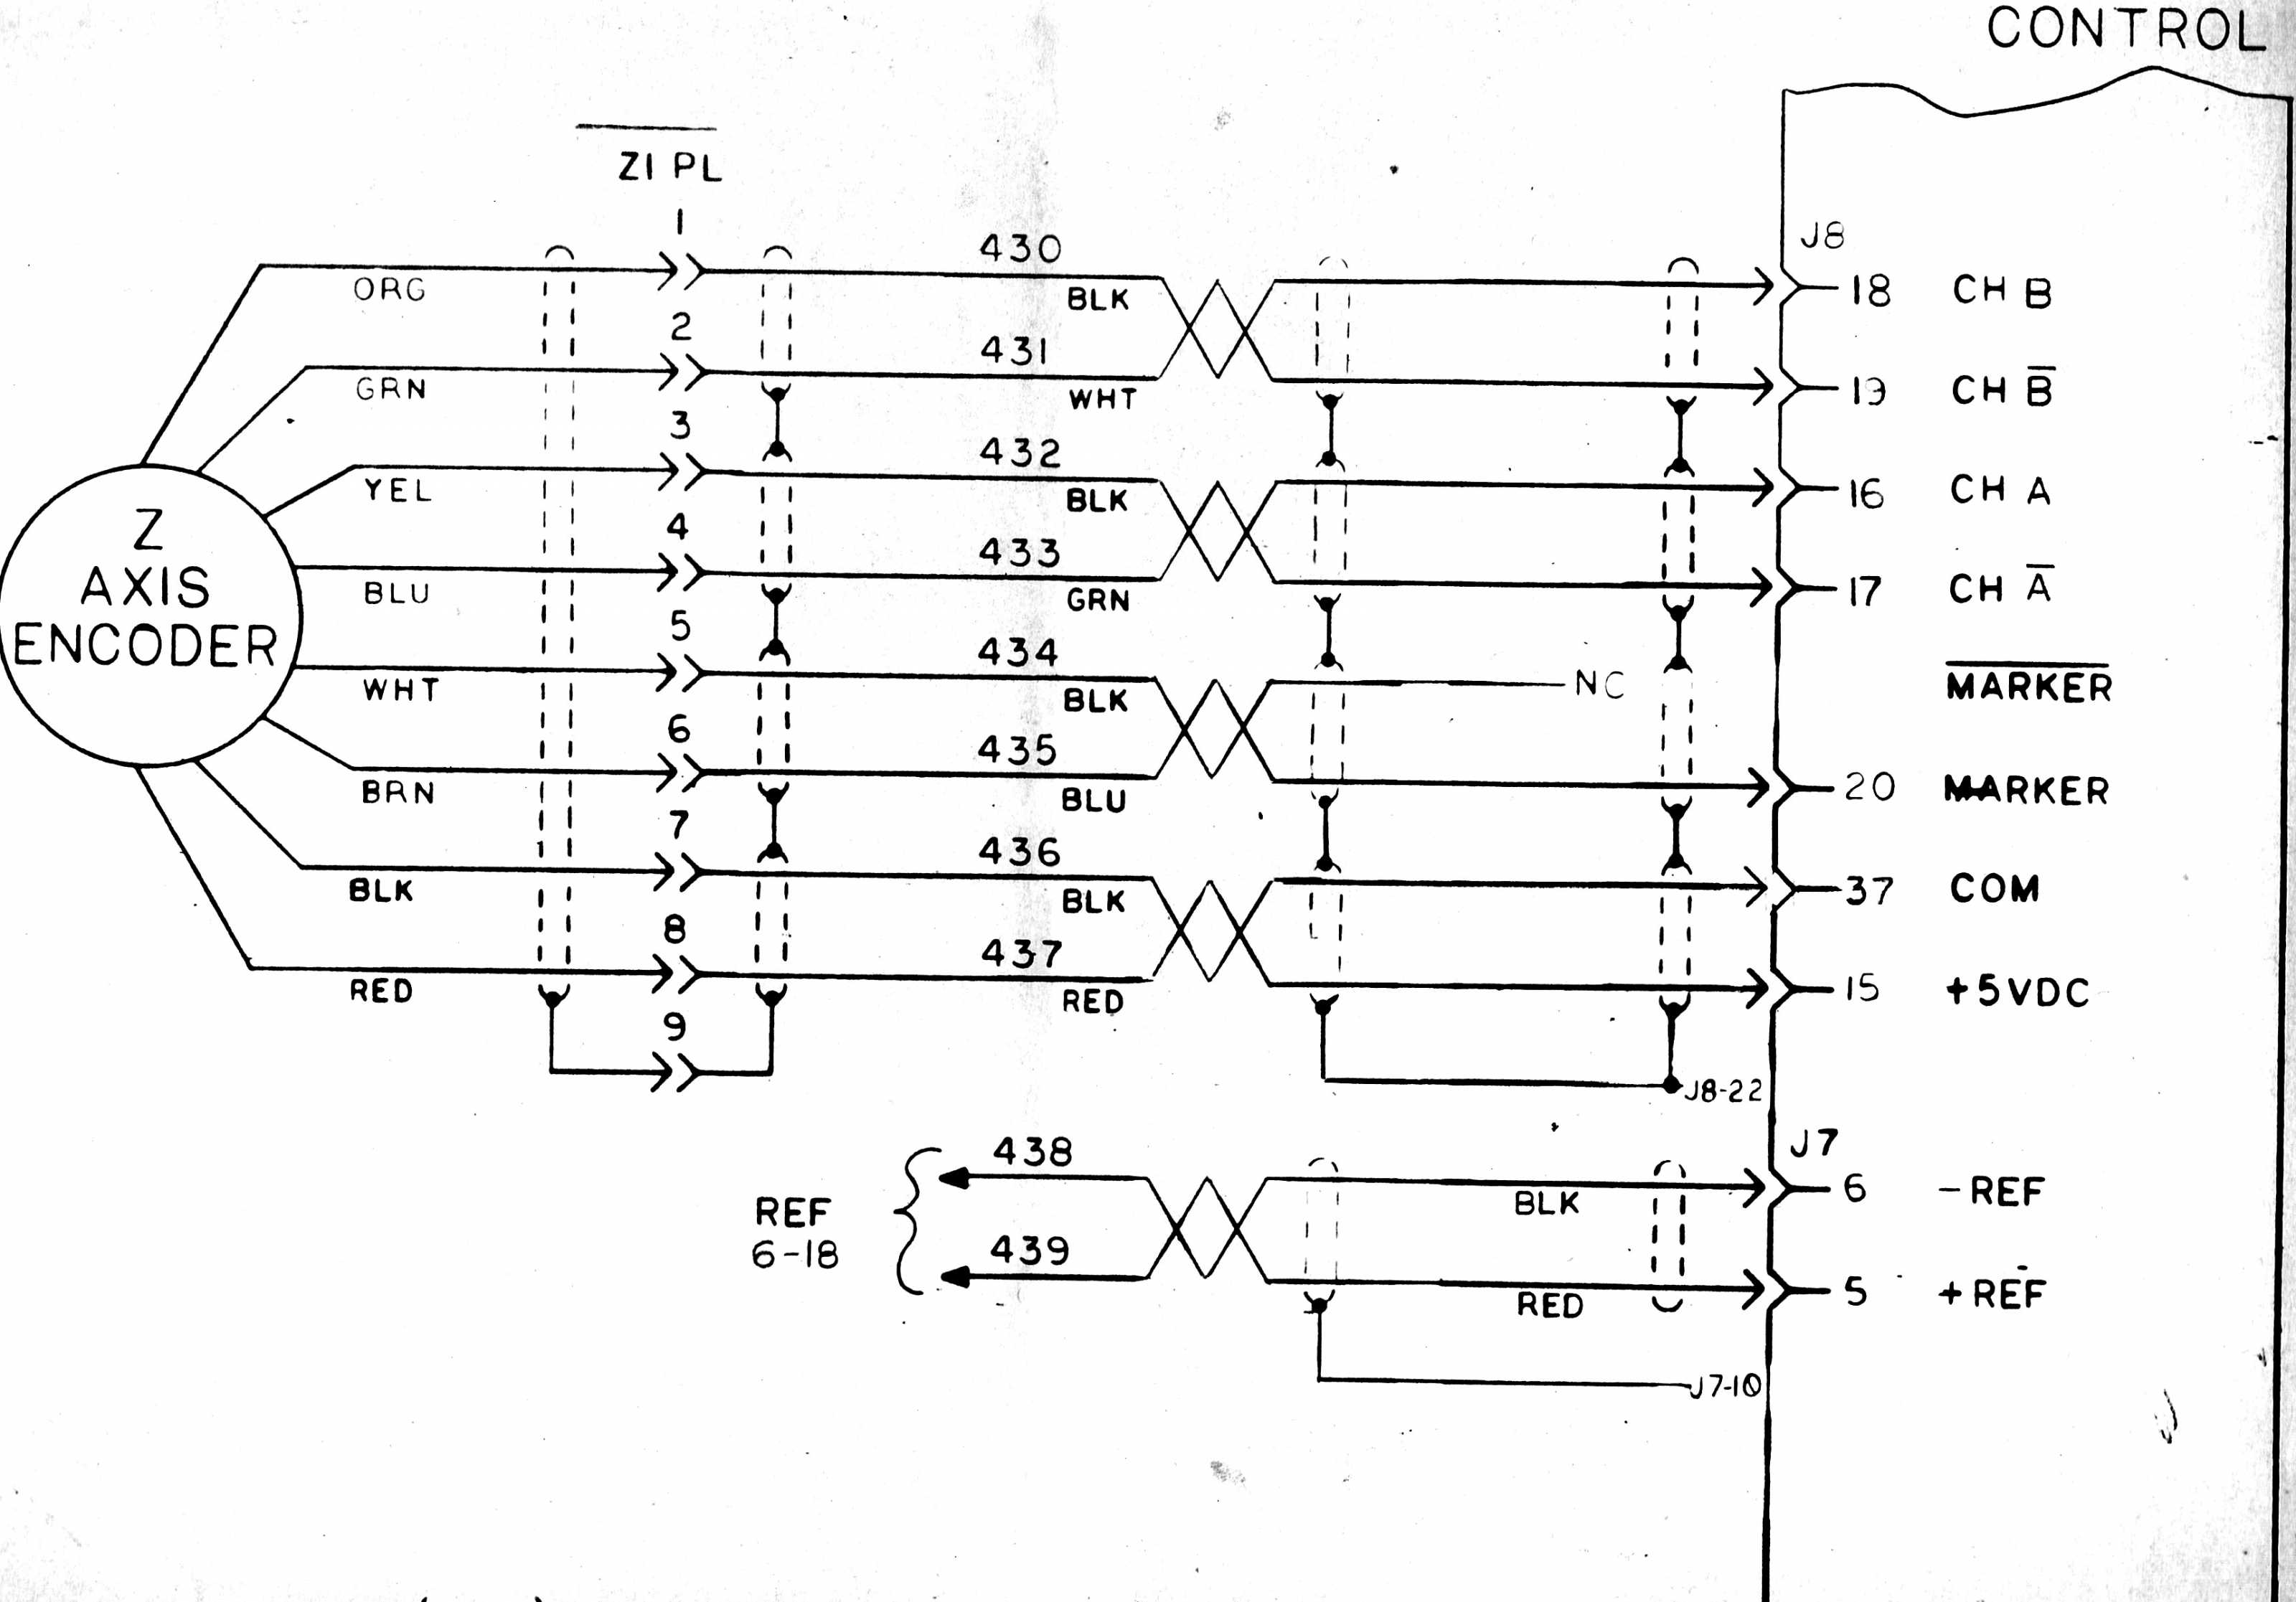 wiring diagram together with encoder motor wiring diagram on plc